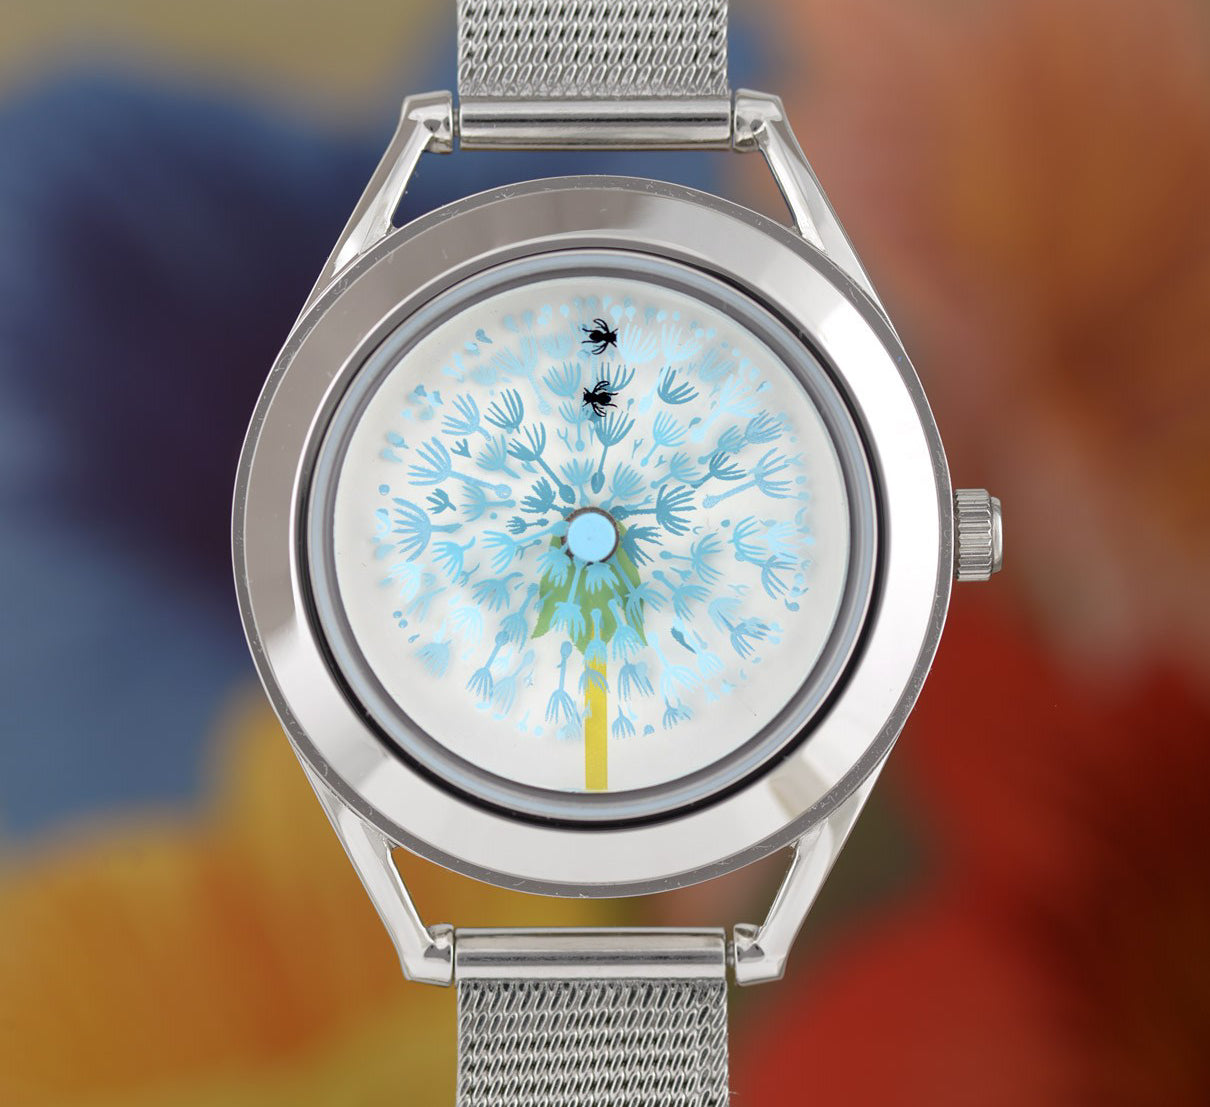 Blowball watch with flower background